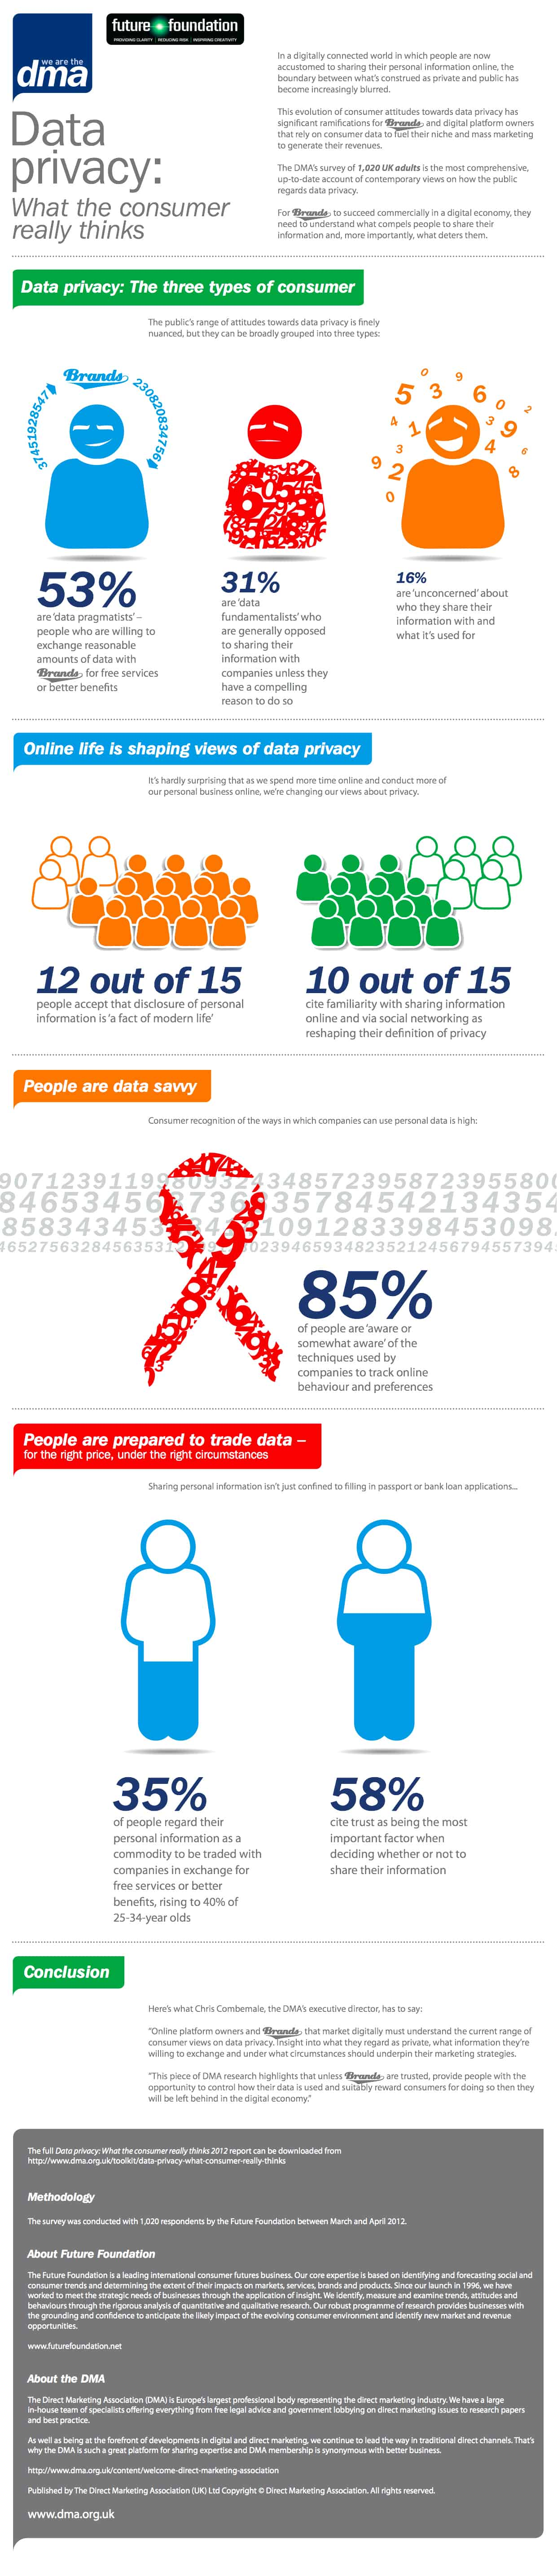 What-The-Consumer-Really-Thinks-Of-Data-Privacy-Infographic